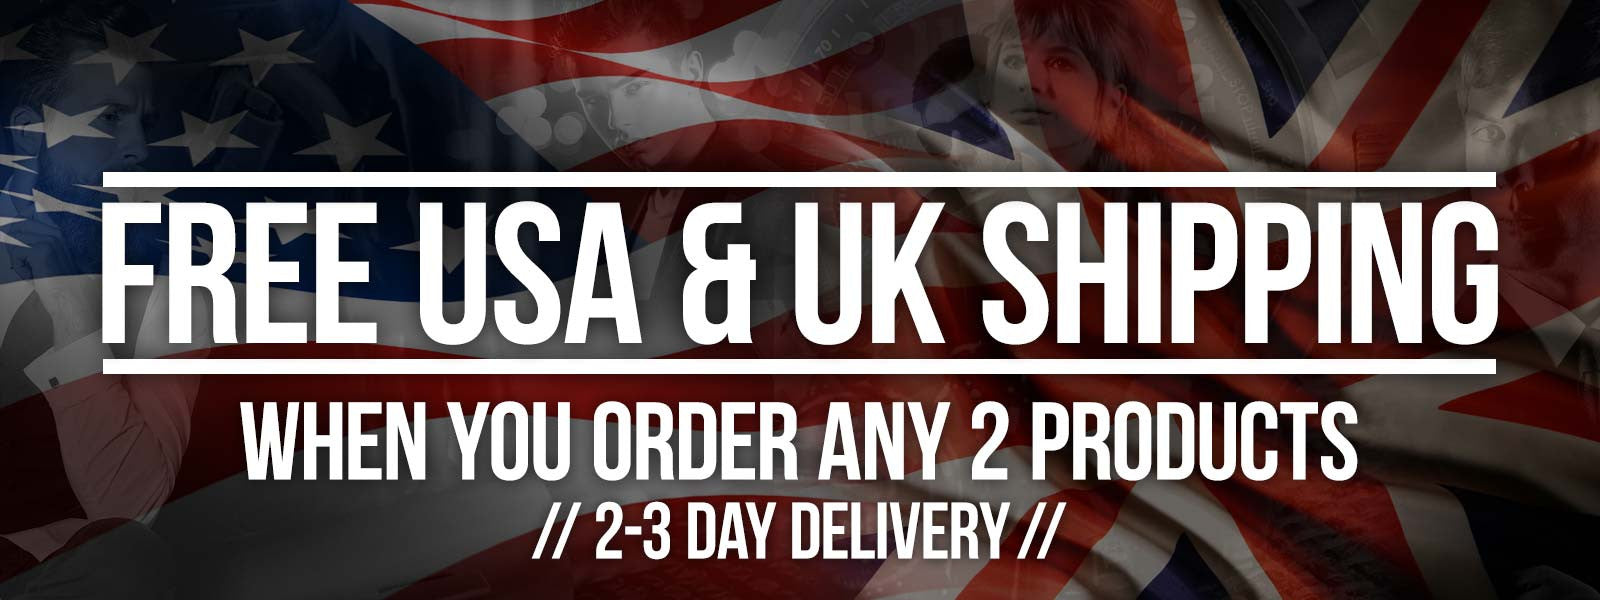 Free USA & UK shipping when you order 2 or more products...